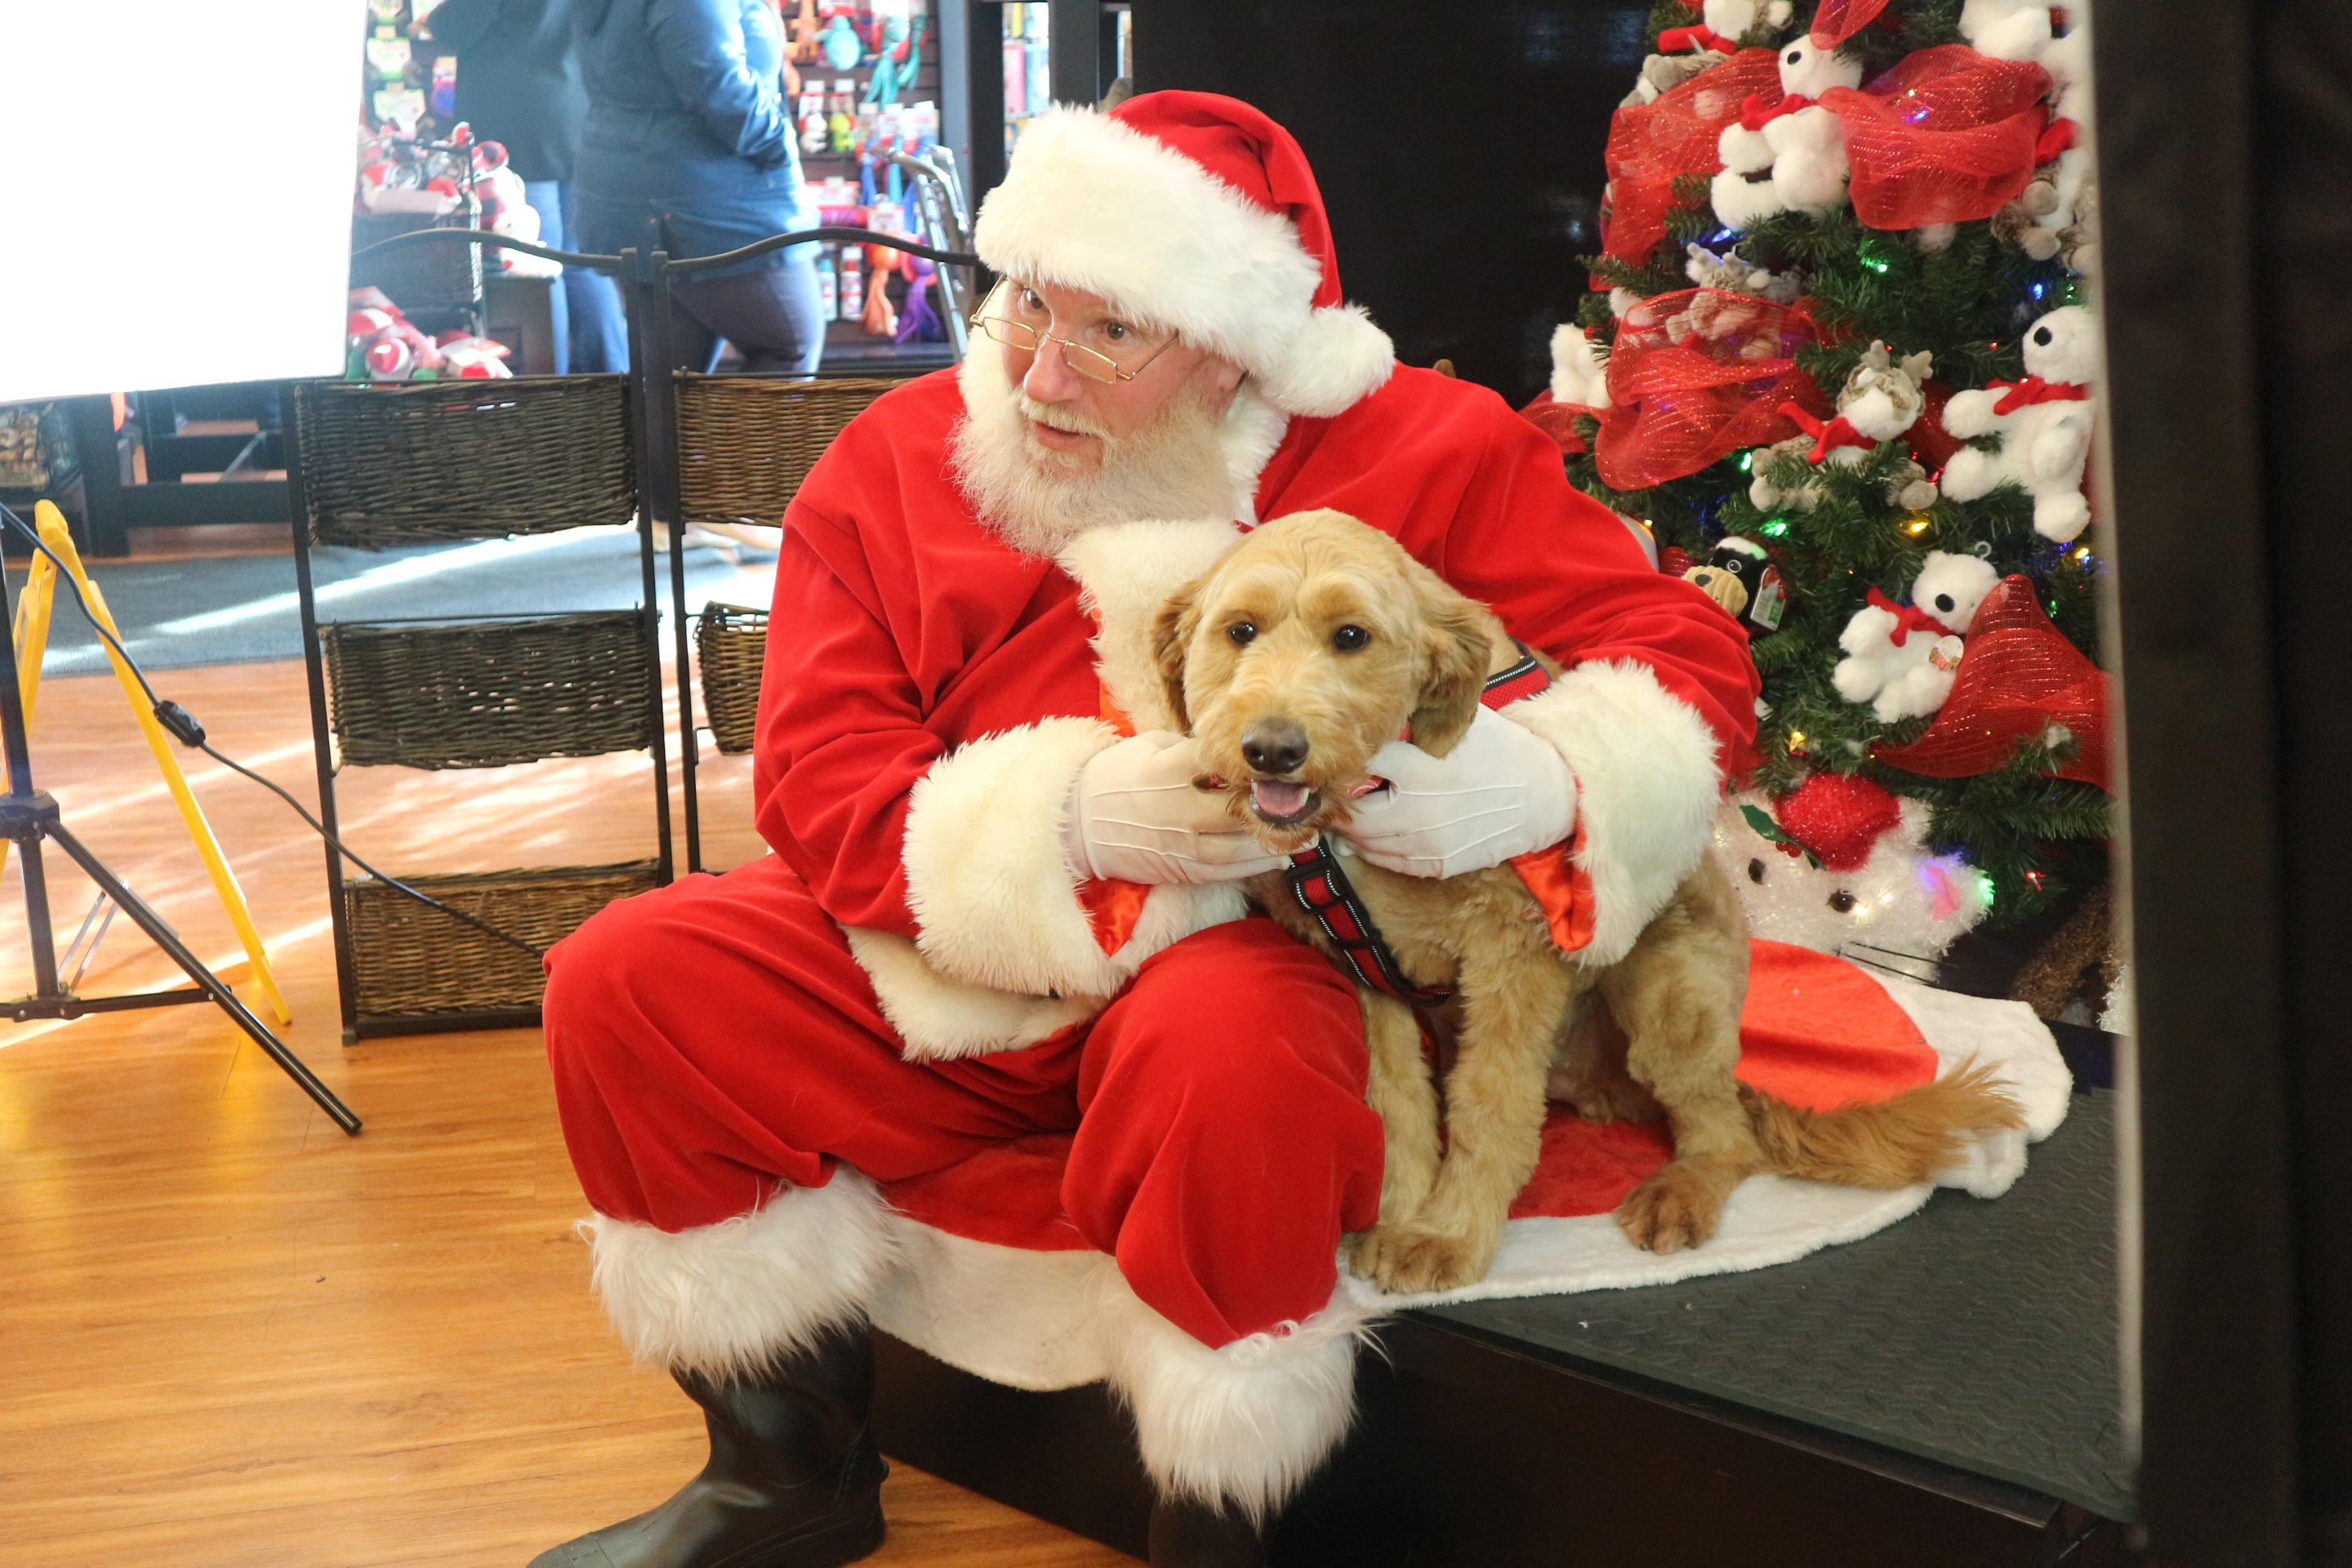 The joy of Christmas unleashed at Pet Valu\u0027s Santa photos (7